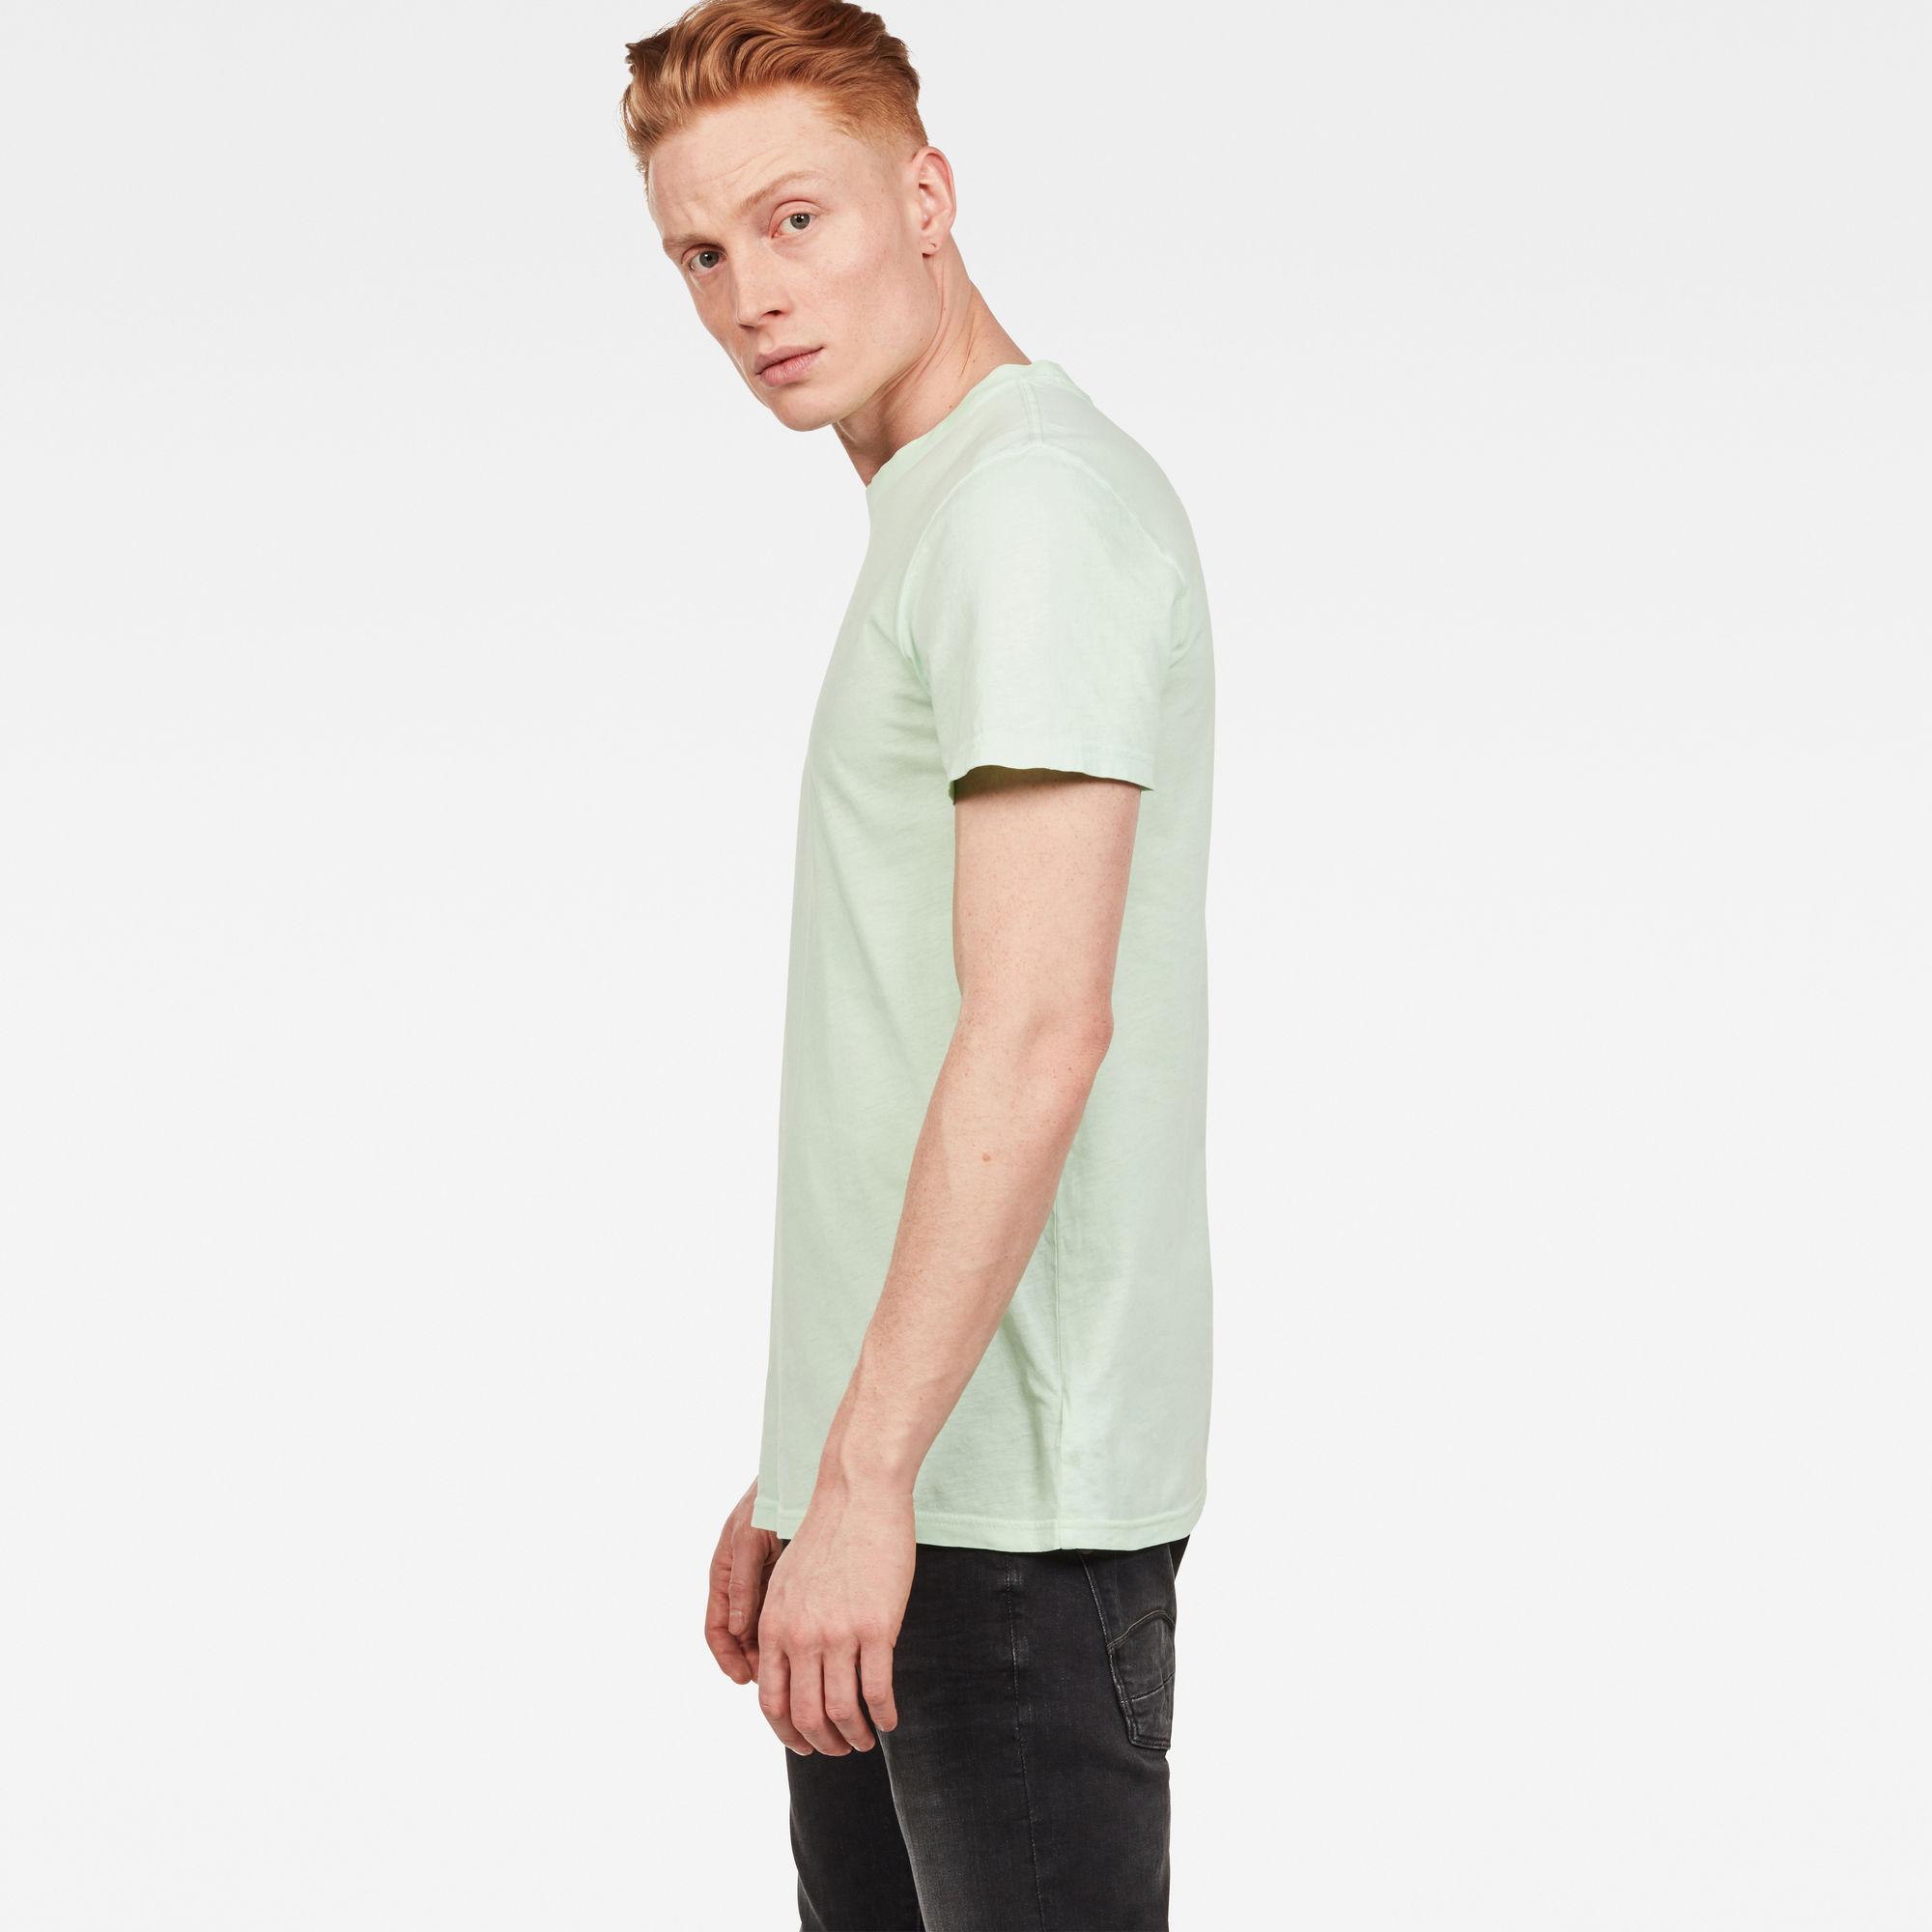 G-Star RAW Recycled Dye T-shirt